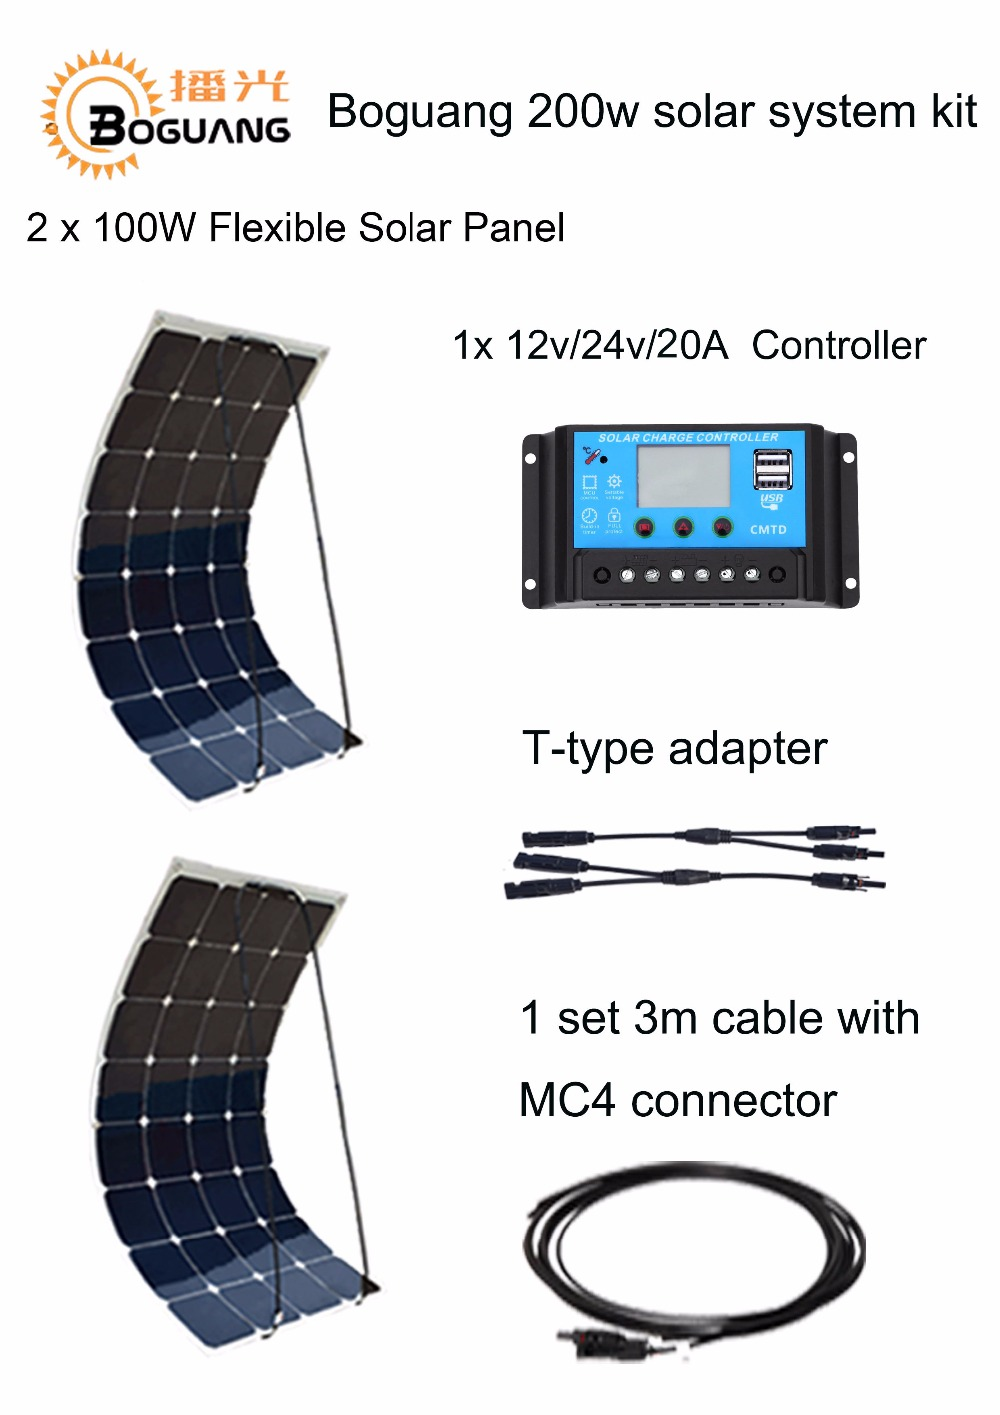 Boguang 200W DIY RV Boat Kits Solar System 2 x100W PV flexible 12V solar panel 20A